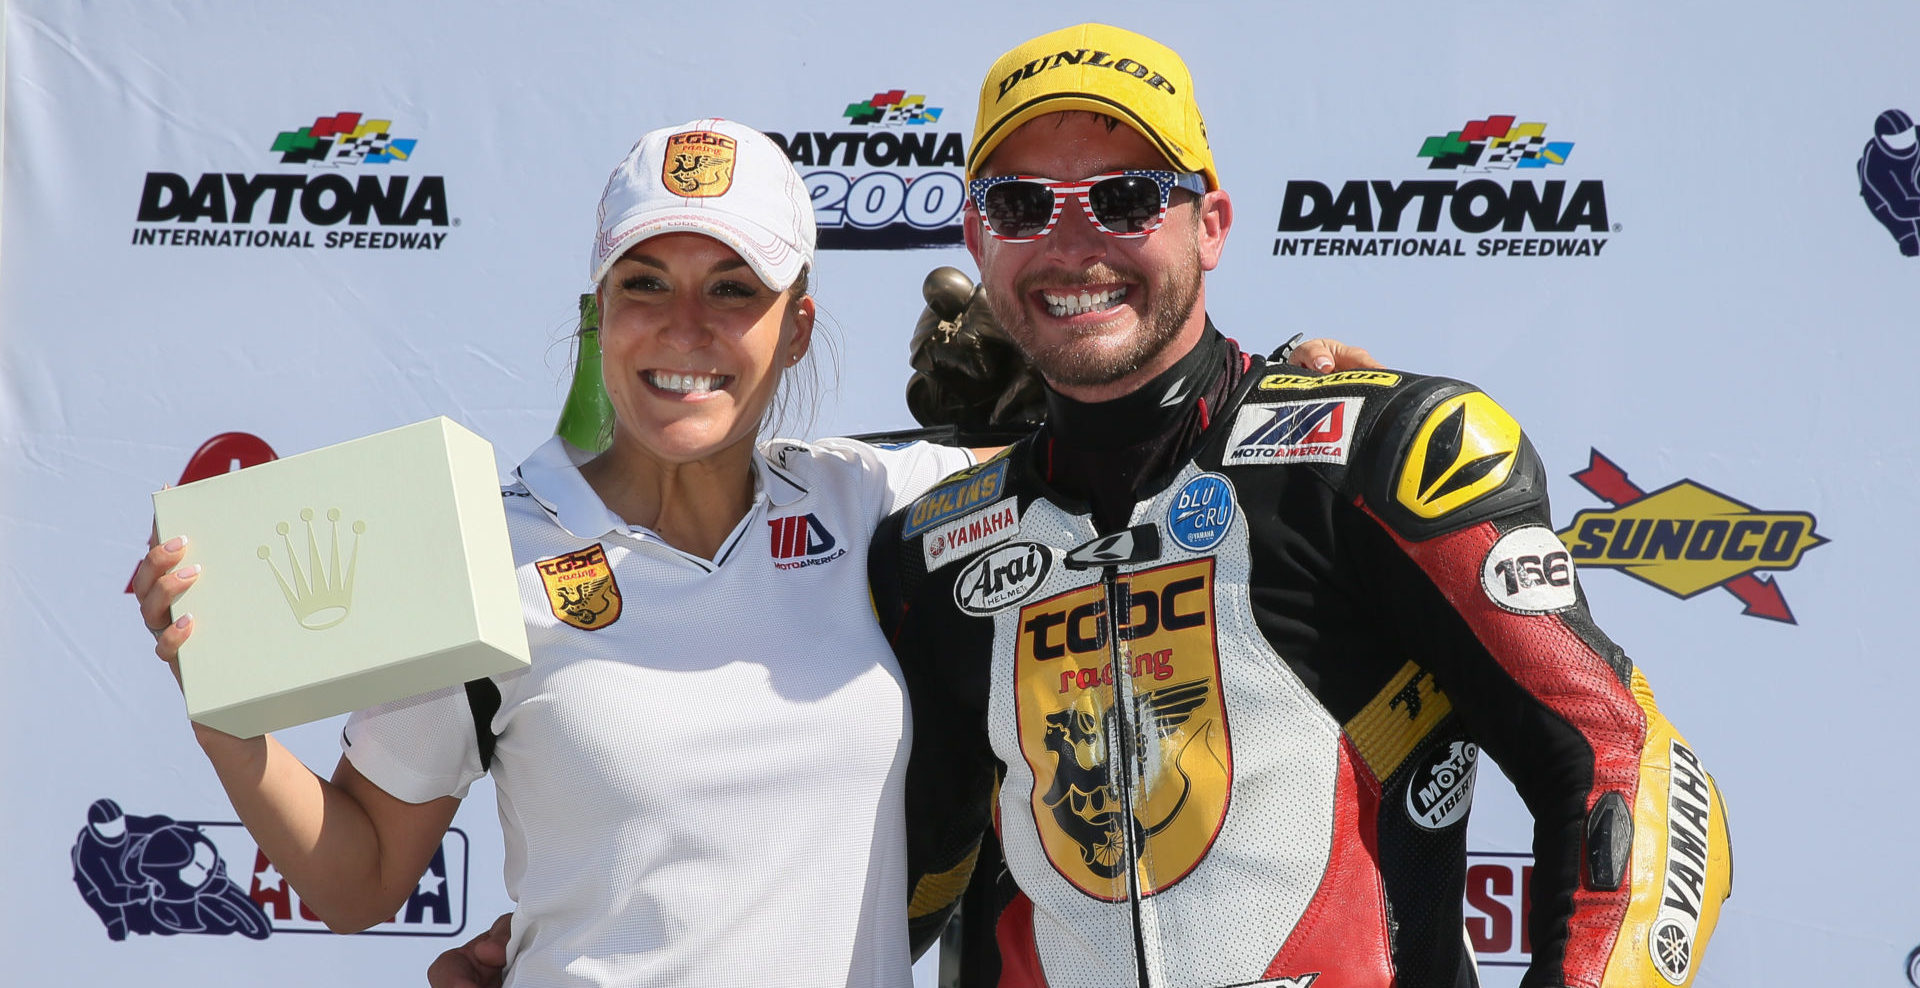 TOBC Racing Team Owner Michelle Lindsay (left) with rider Danny Eslick (right) after winning the 2018 Daytona 200, their third win together and Eslick's fourth Daytona 200 win overall. Lindsay, Eslick, and TOBC Racing will be honored during a celebration on March 11 at the Daytona 200 Memorial in Daytona Beach, Florida. Photo by Brian J. Nelson.